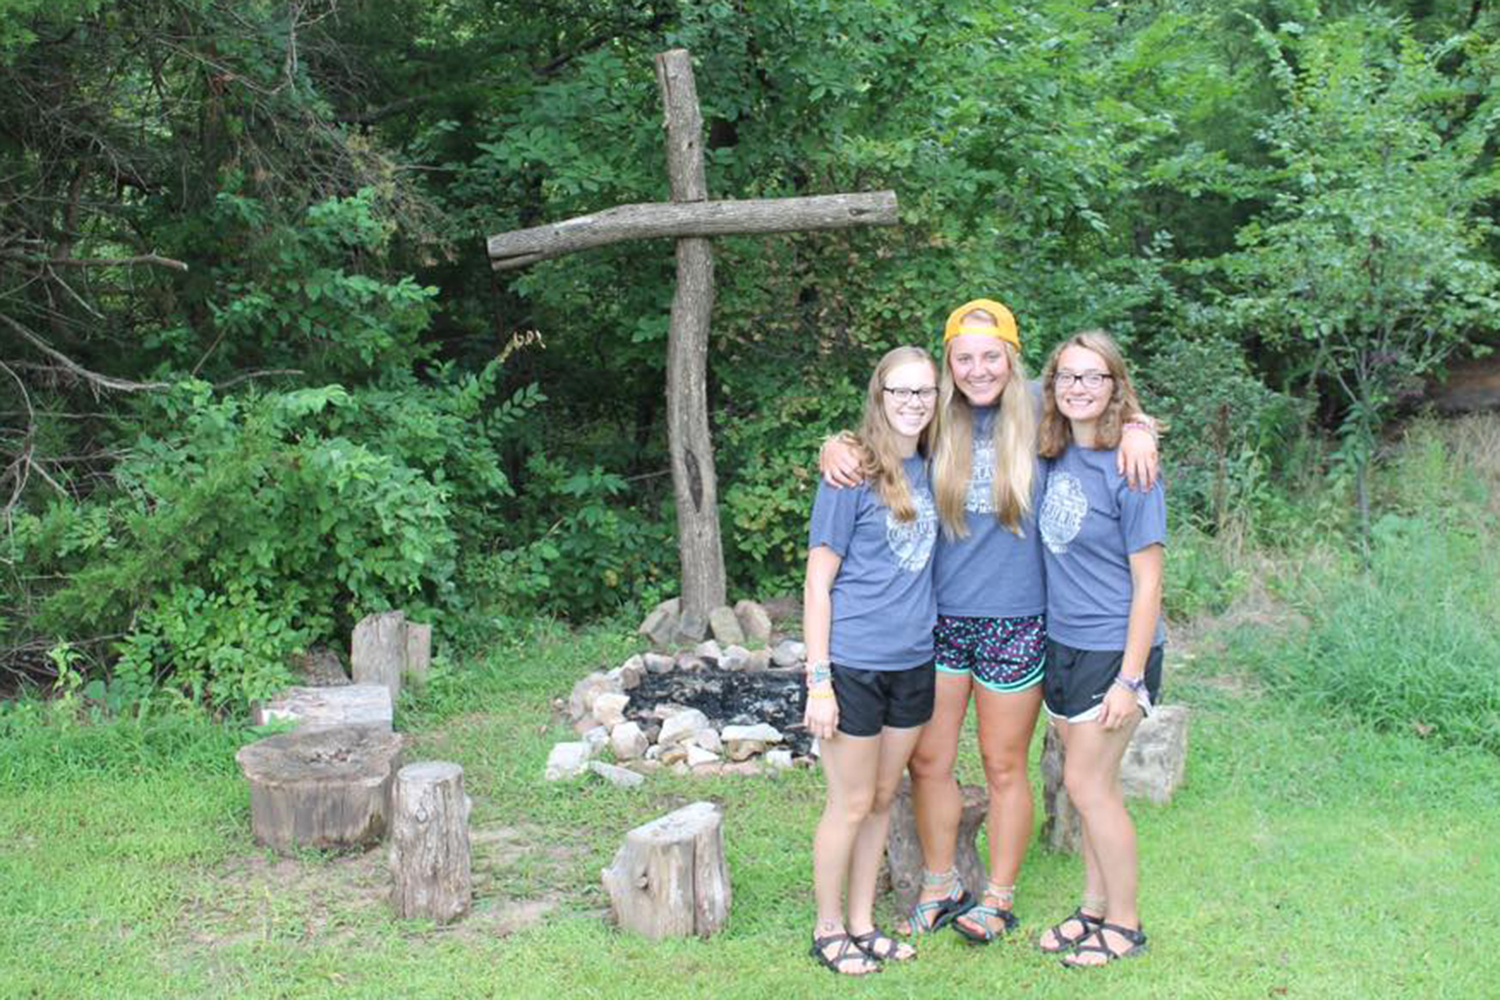 Lizzie Schrag (far right) with her roommates from Camp Mennoscah. Lizzie Schrag: knowing God beyond academia